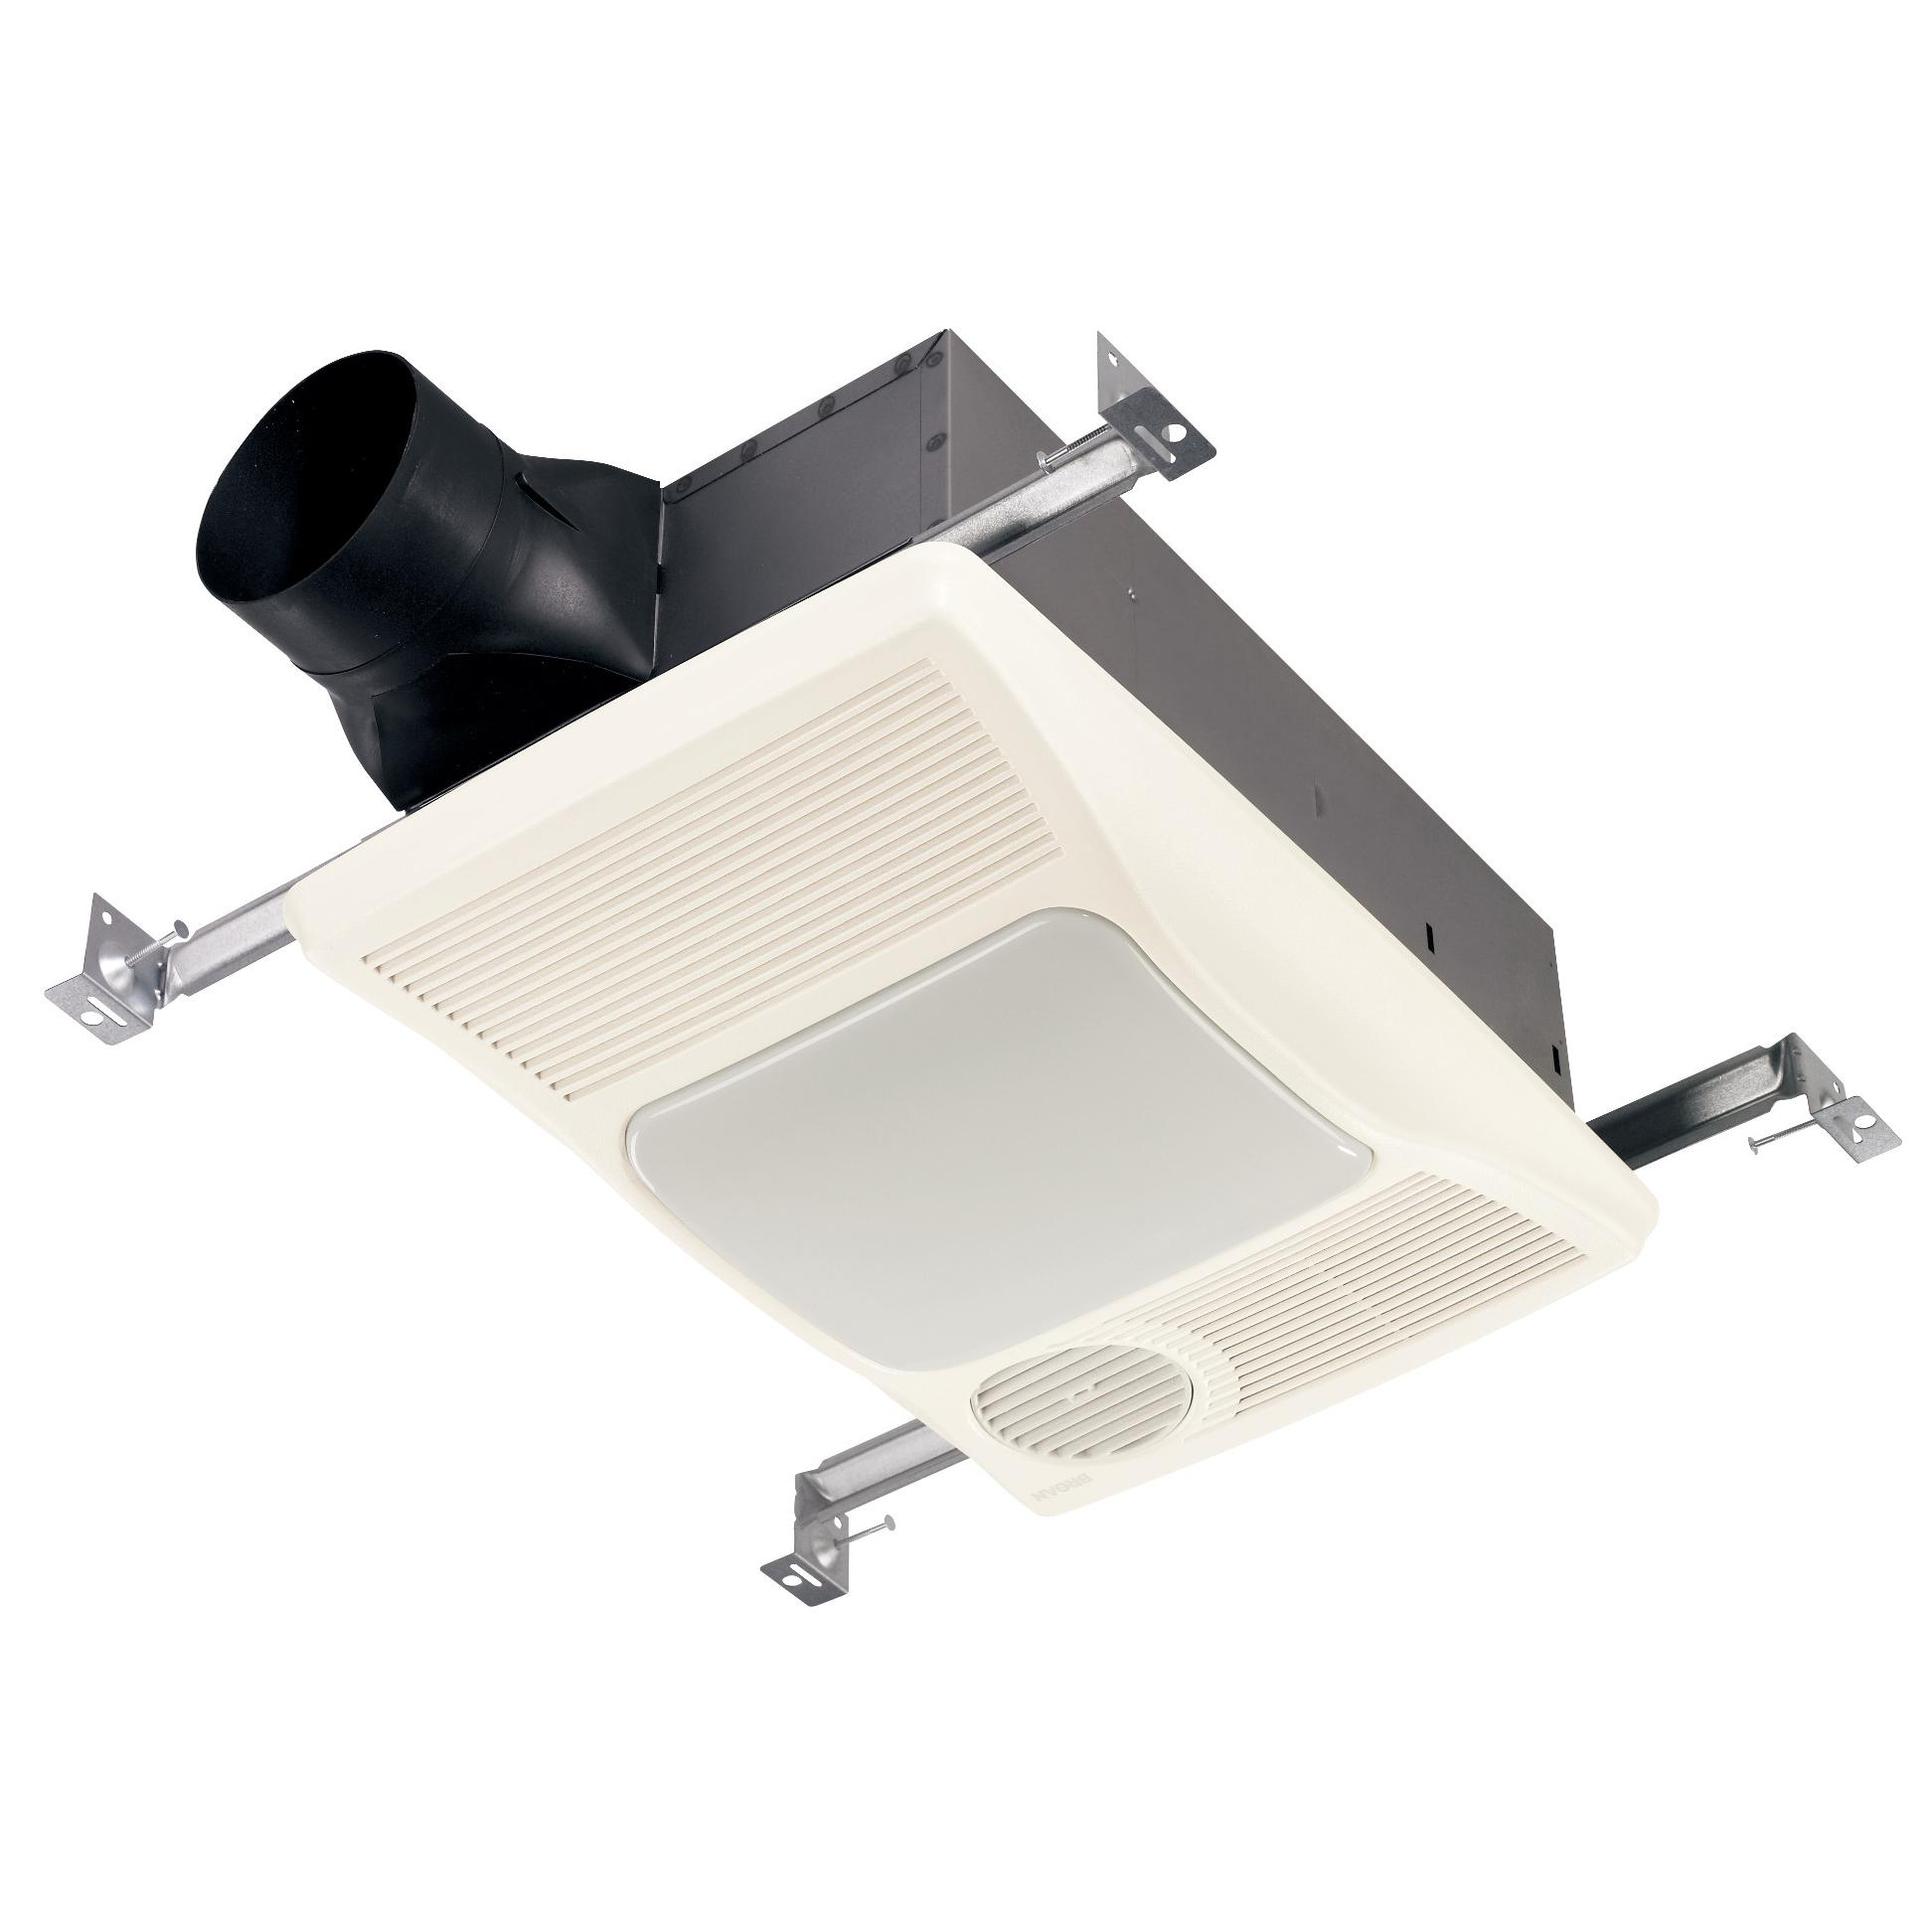 Nutone bathroom fan light replacement - Broan 100hl Directionally Adjustable Bath Fan With Heater And Incandescent Light